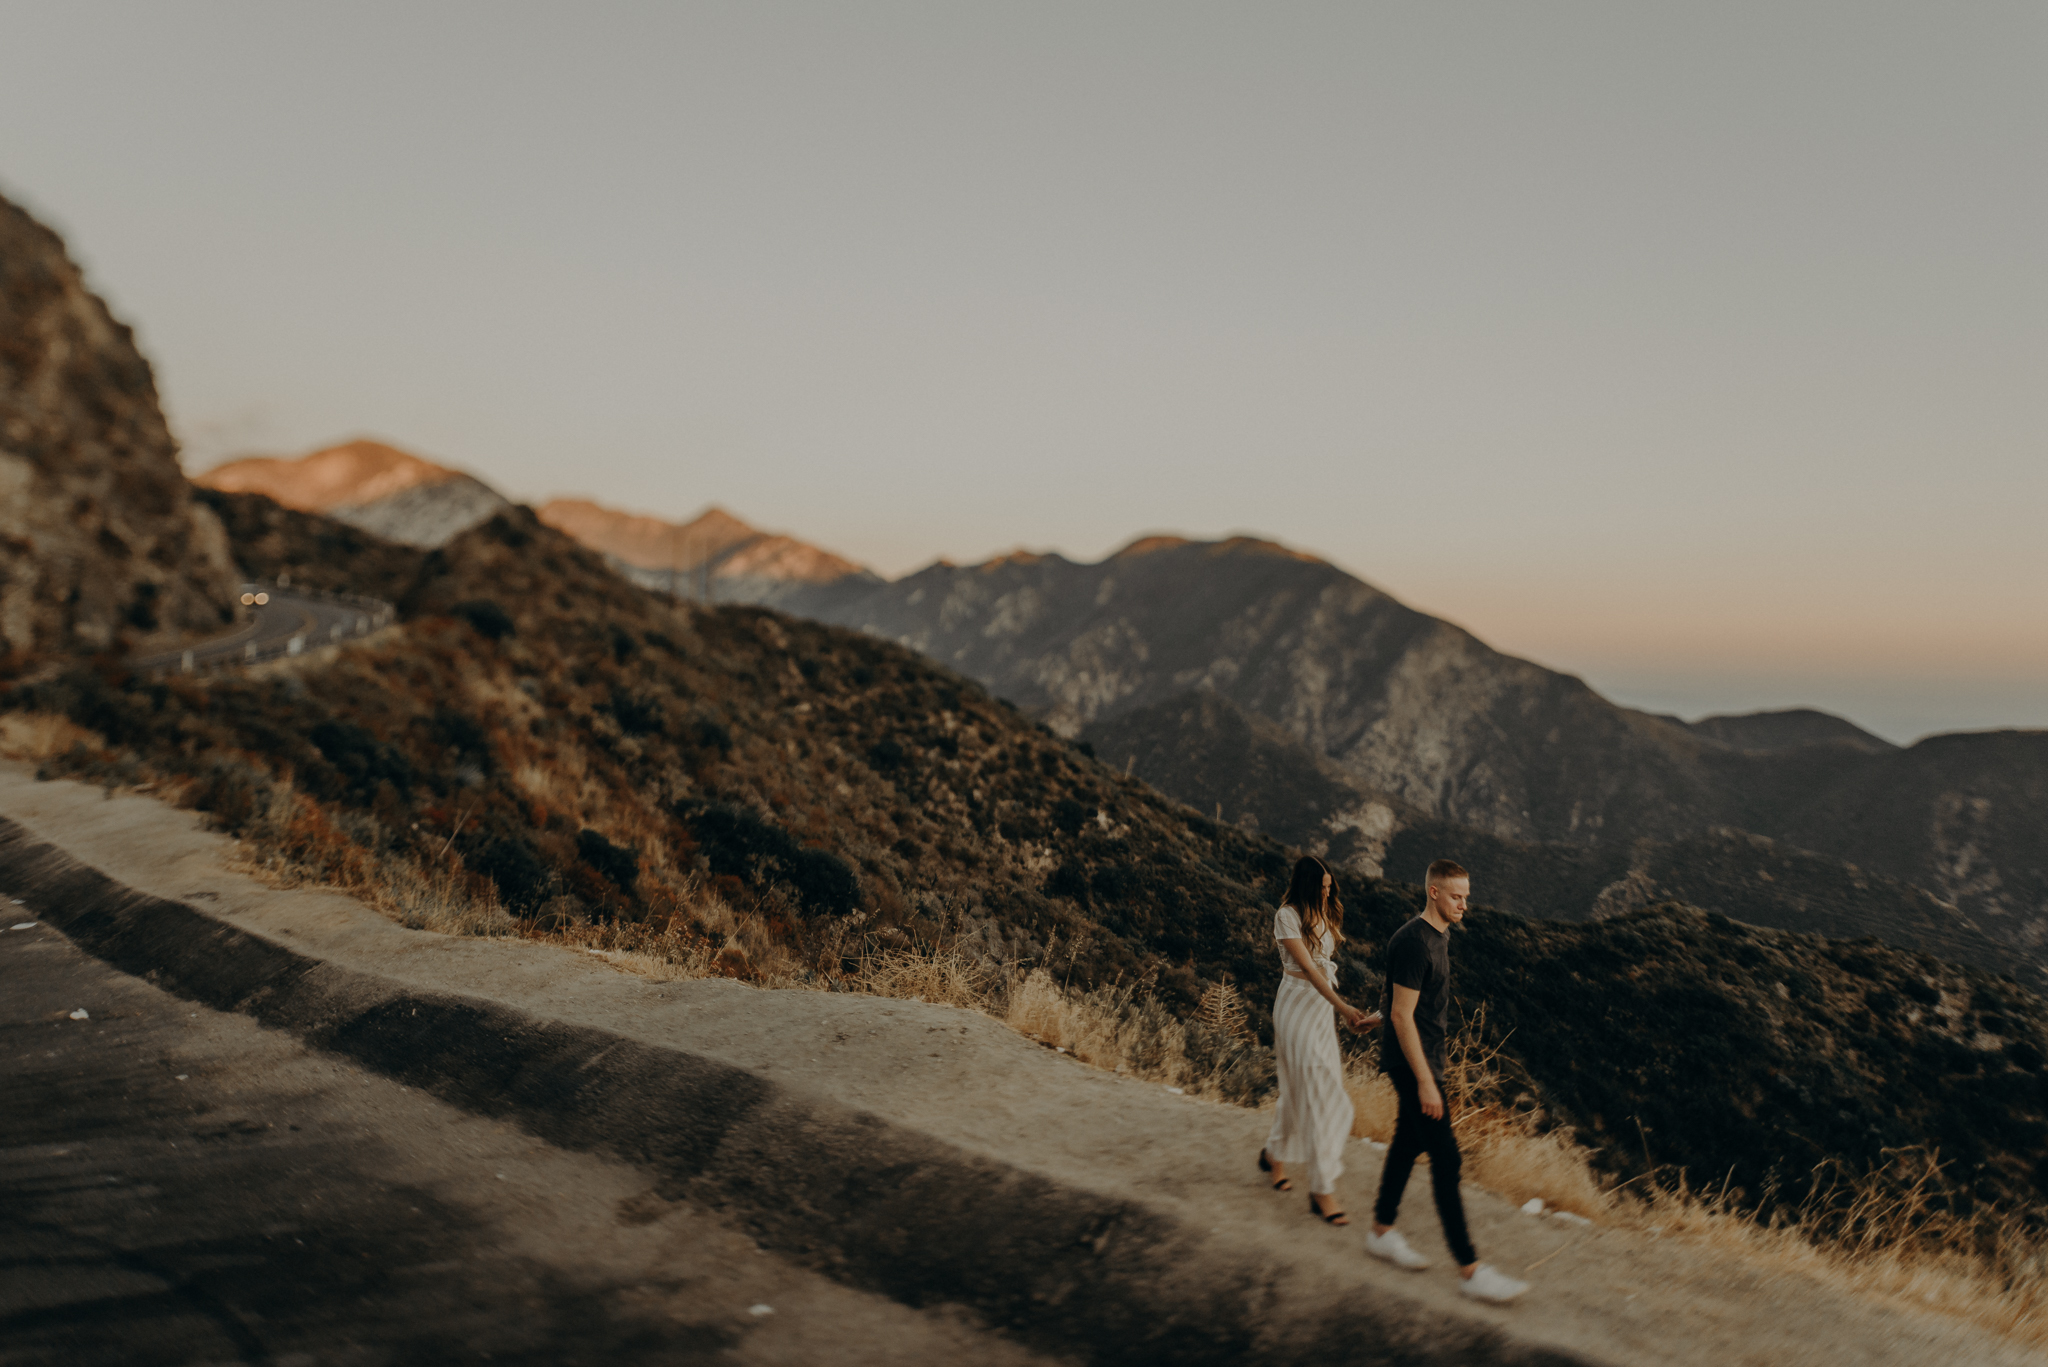 Isaiah + Taylor Photography - Los Angeles Forest Engagement Session - Laid back wedding photographer-008.jpg